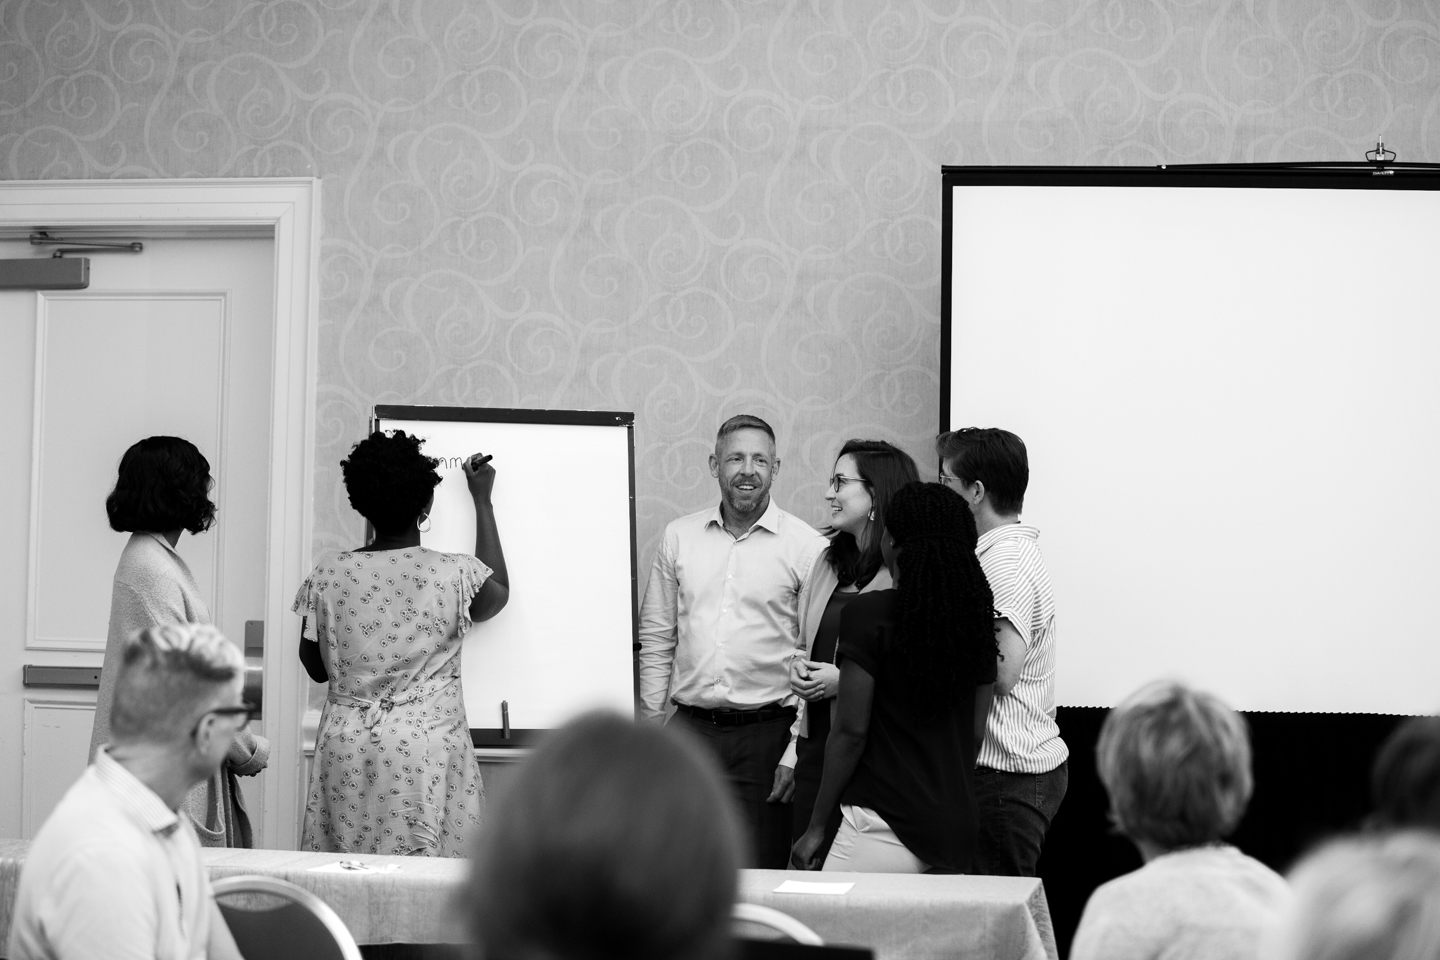 professional-photography-in-central-florida-corporate-conference-19.jpg